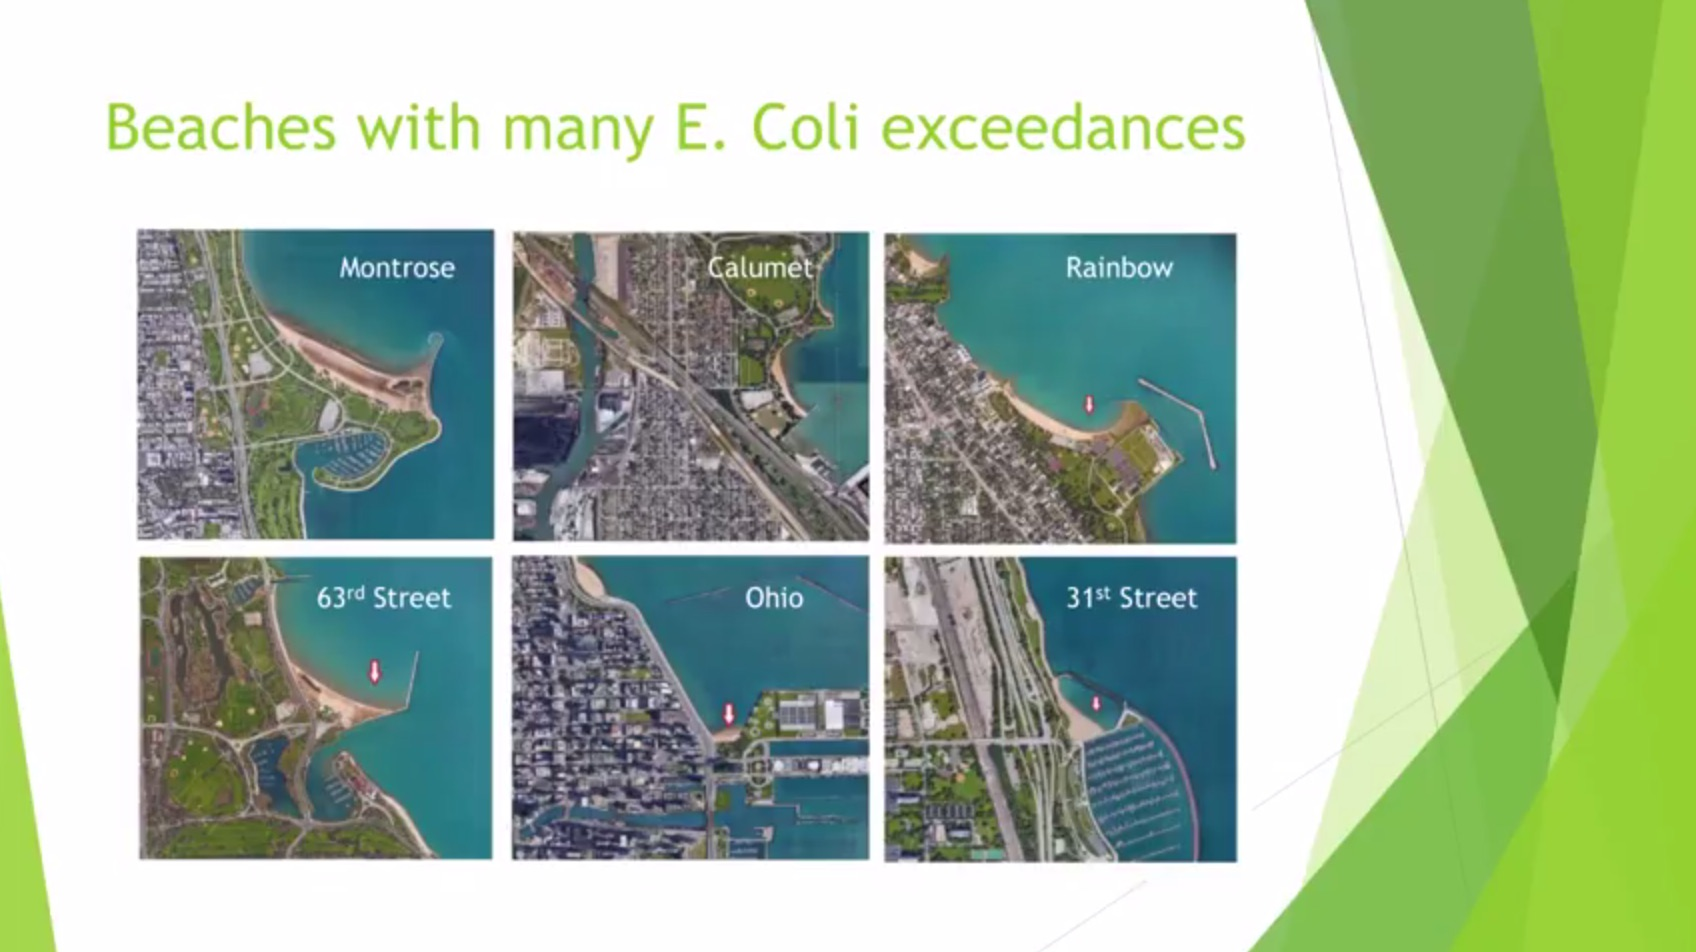 A slide from Rebecca Jones' lightning talk on Predicting E. Coli Exceedances on Chicago Beaches